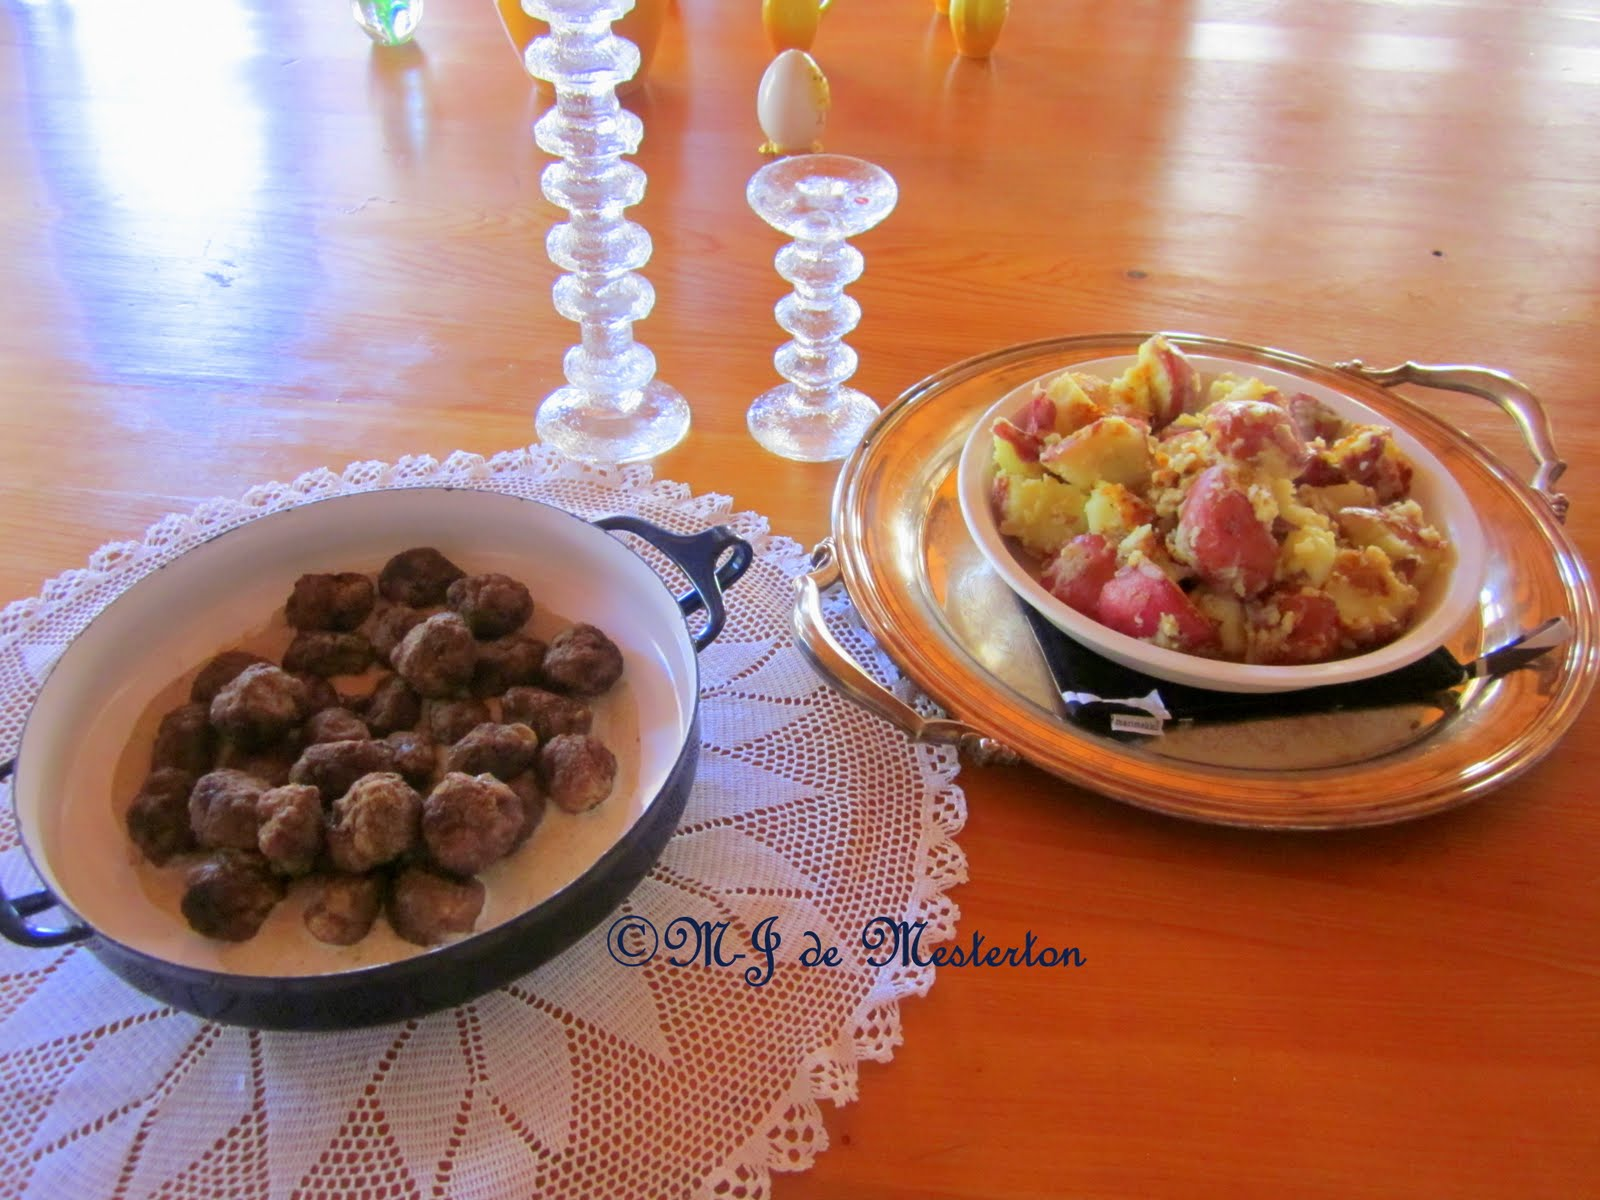 Serve Swedish meatballs with new potatoes and perhaps a little